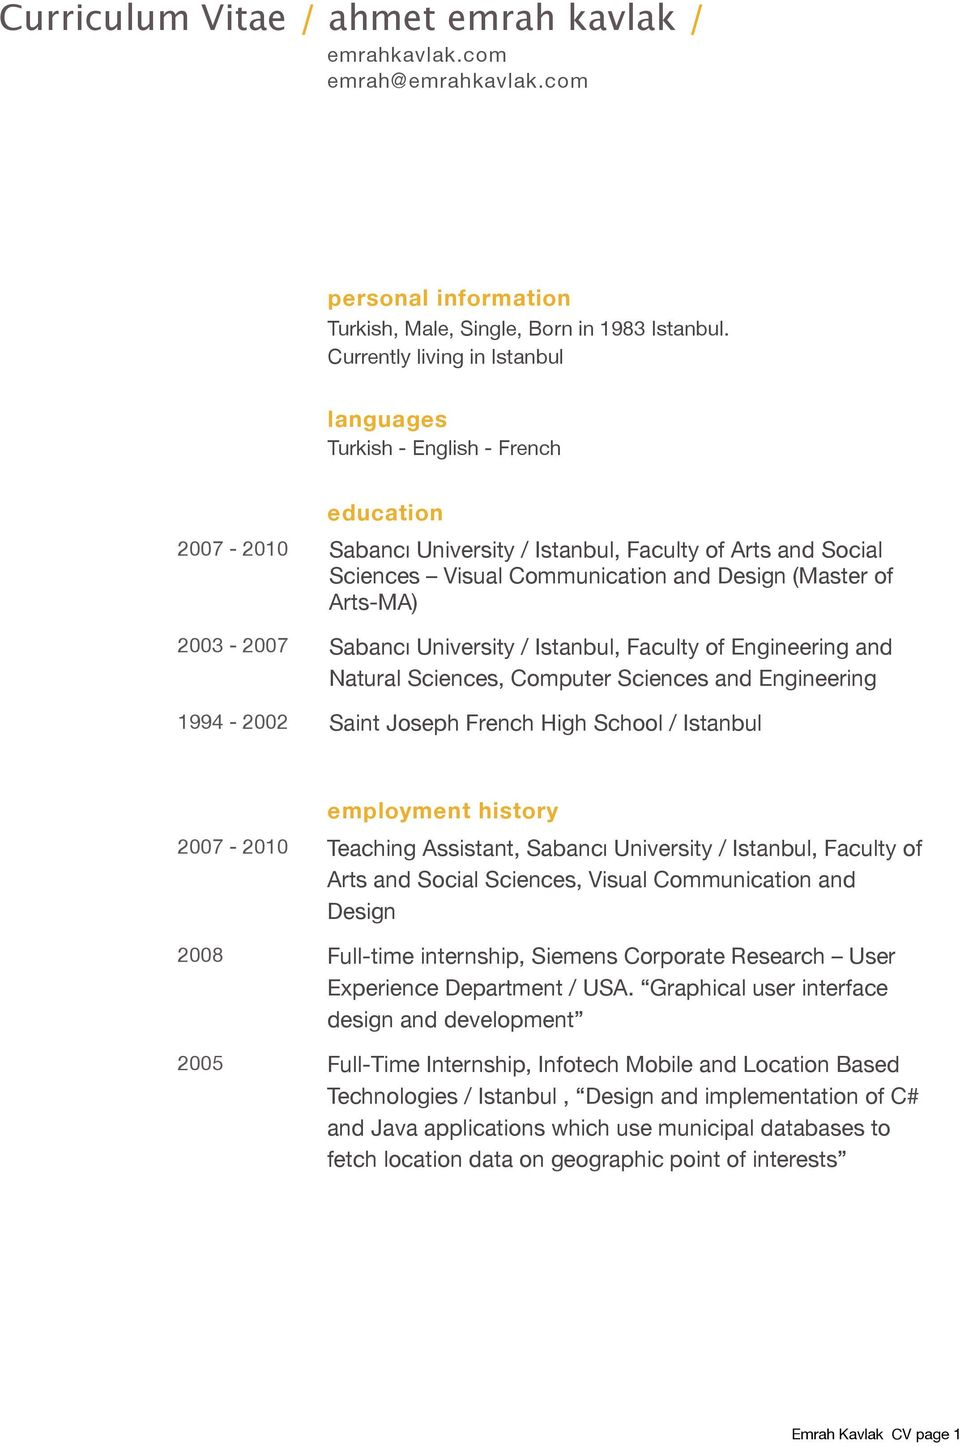 Arts-MA) 2003-2007 Sabancı University / Istanbul, Faculty of Engineering and Natural Sciences, Computer Sciences and Engineering 1994-2002 Saint Joseph French High School / Istanbul employment